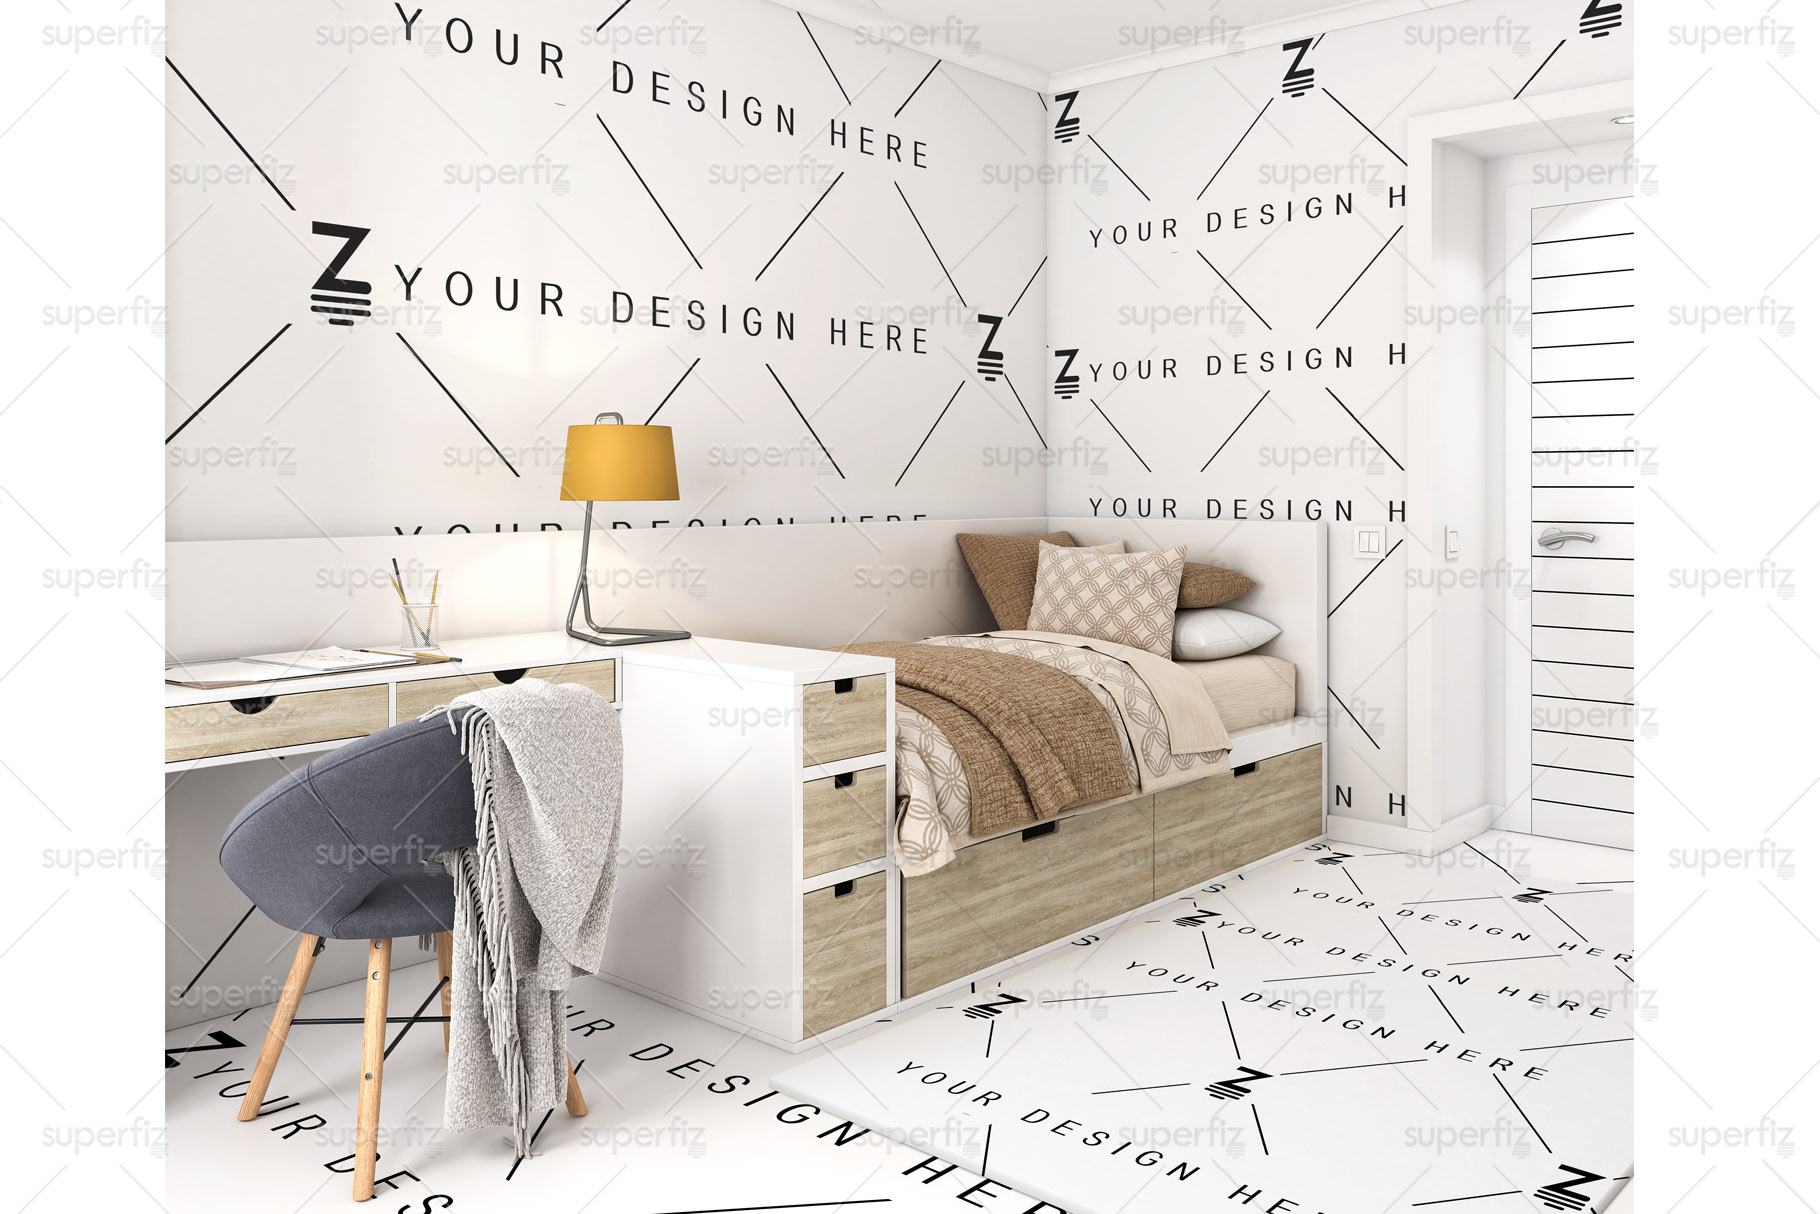 Wallpaper, floor and carpet Mockup Kids Bedroom SM62 example image 3